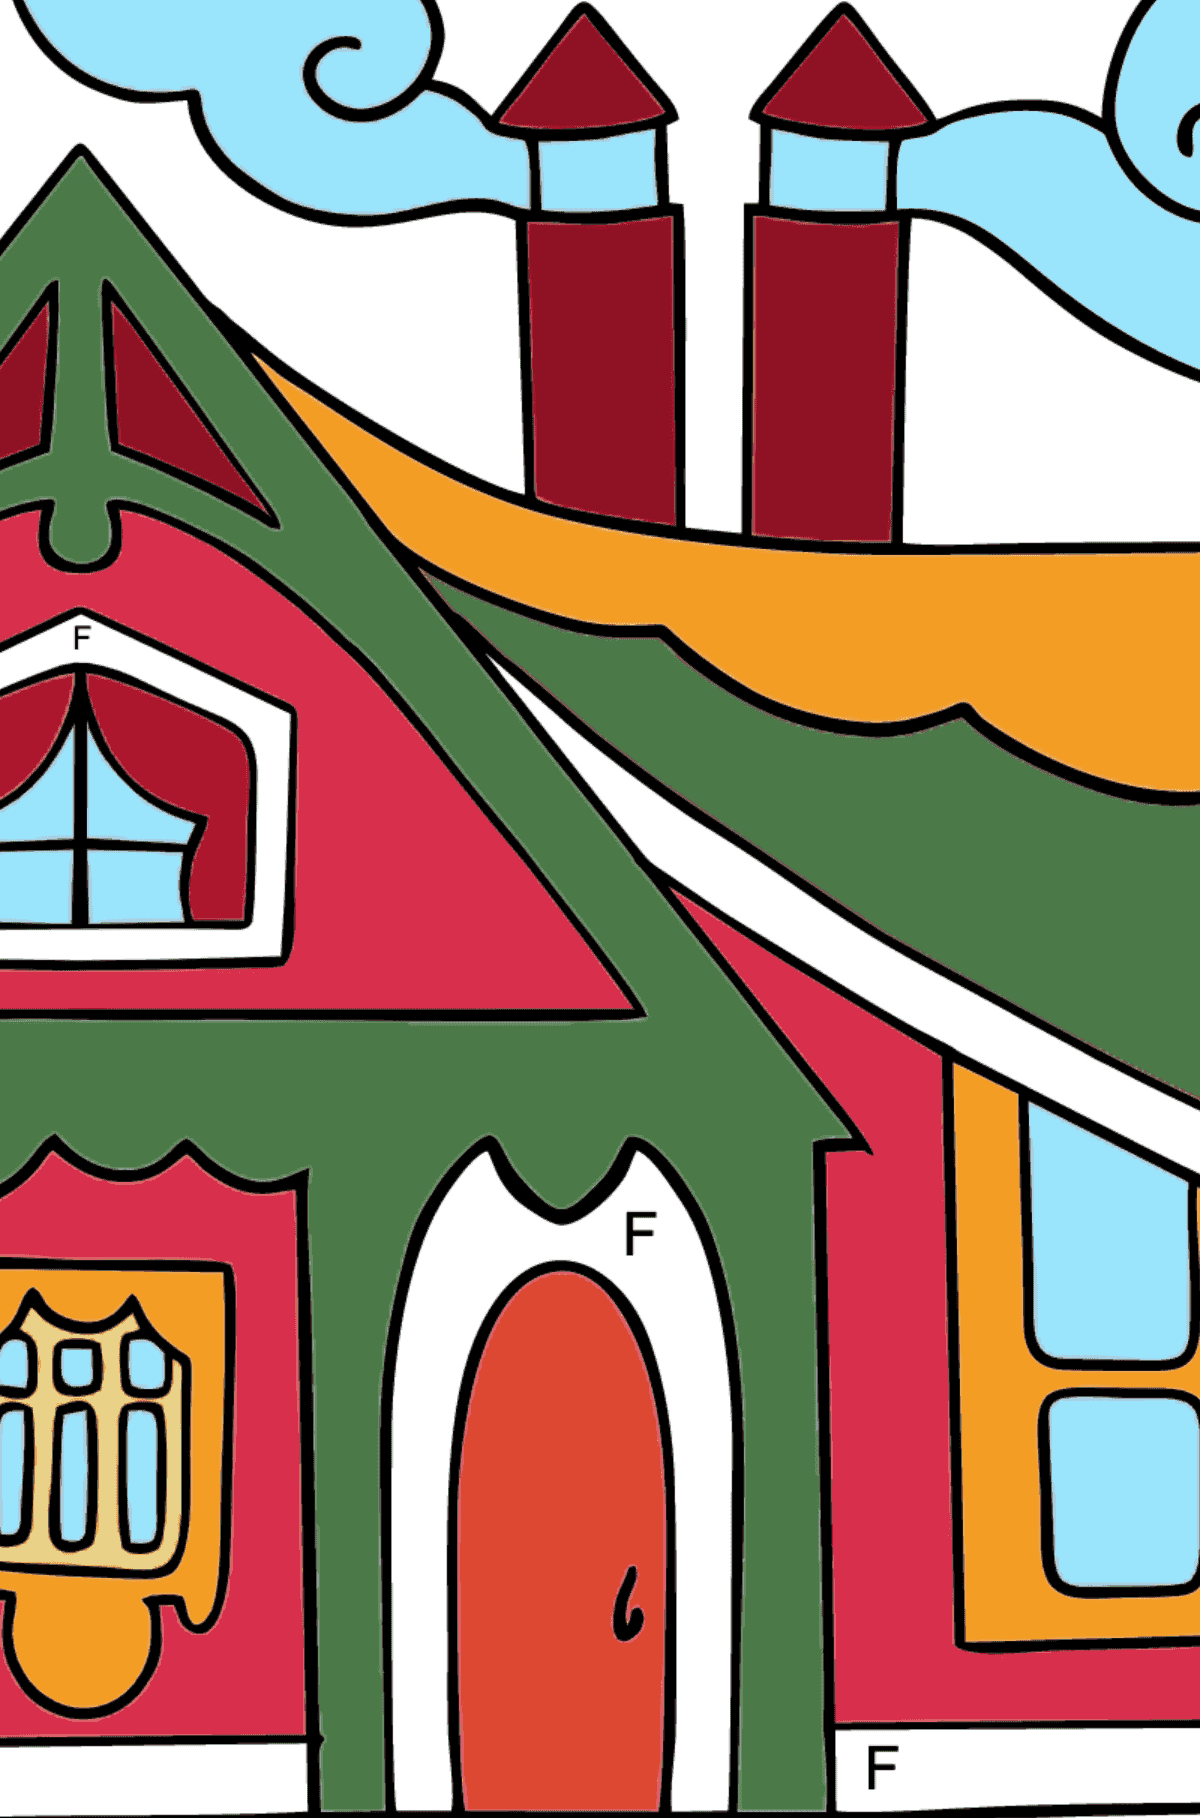 Complex Coloring Page - A Tiny House for Kids  - Color by Letters